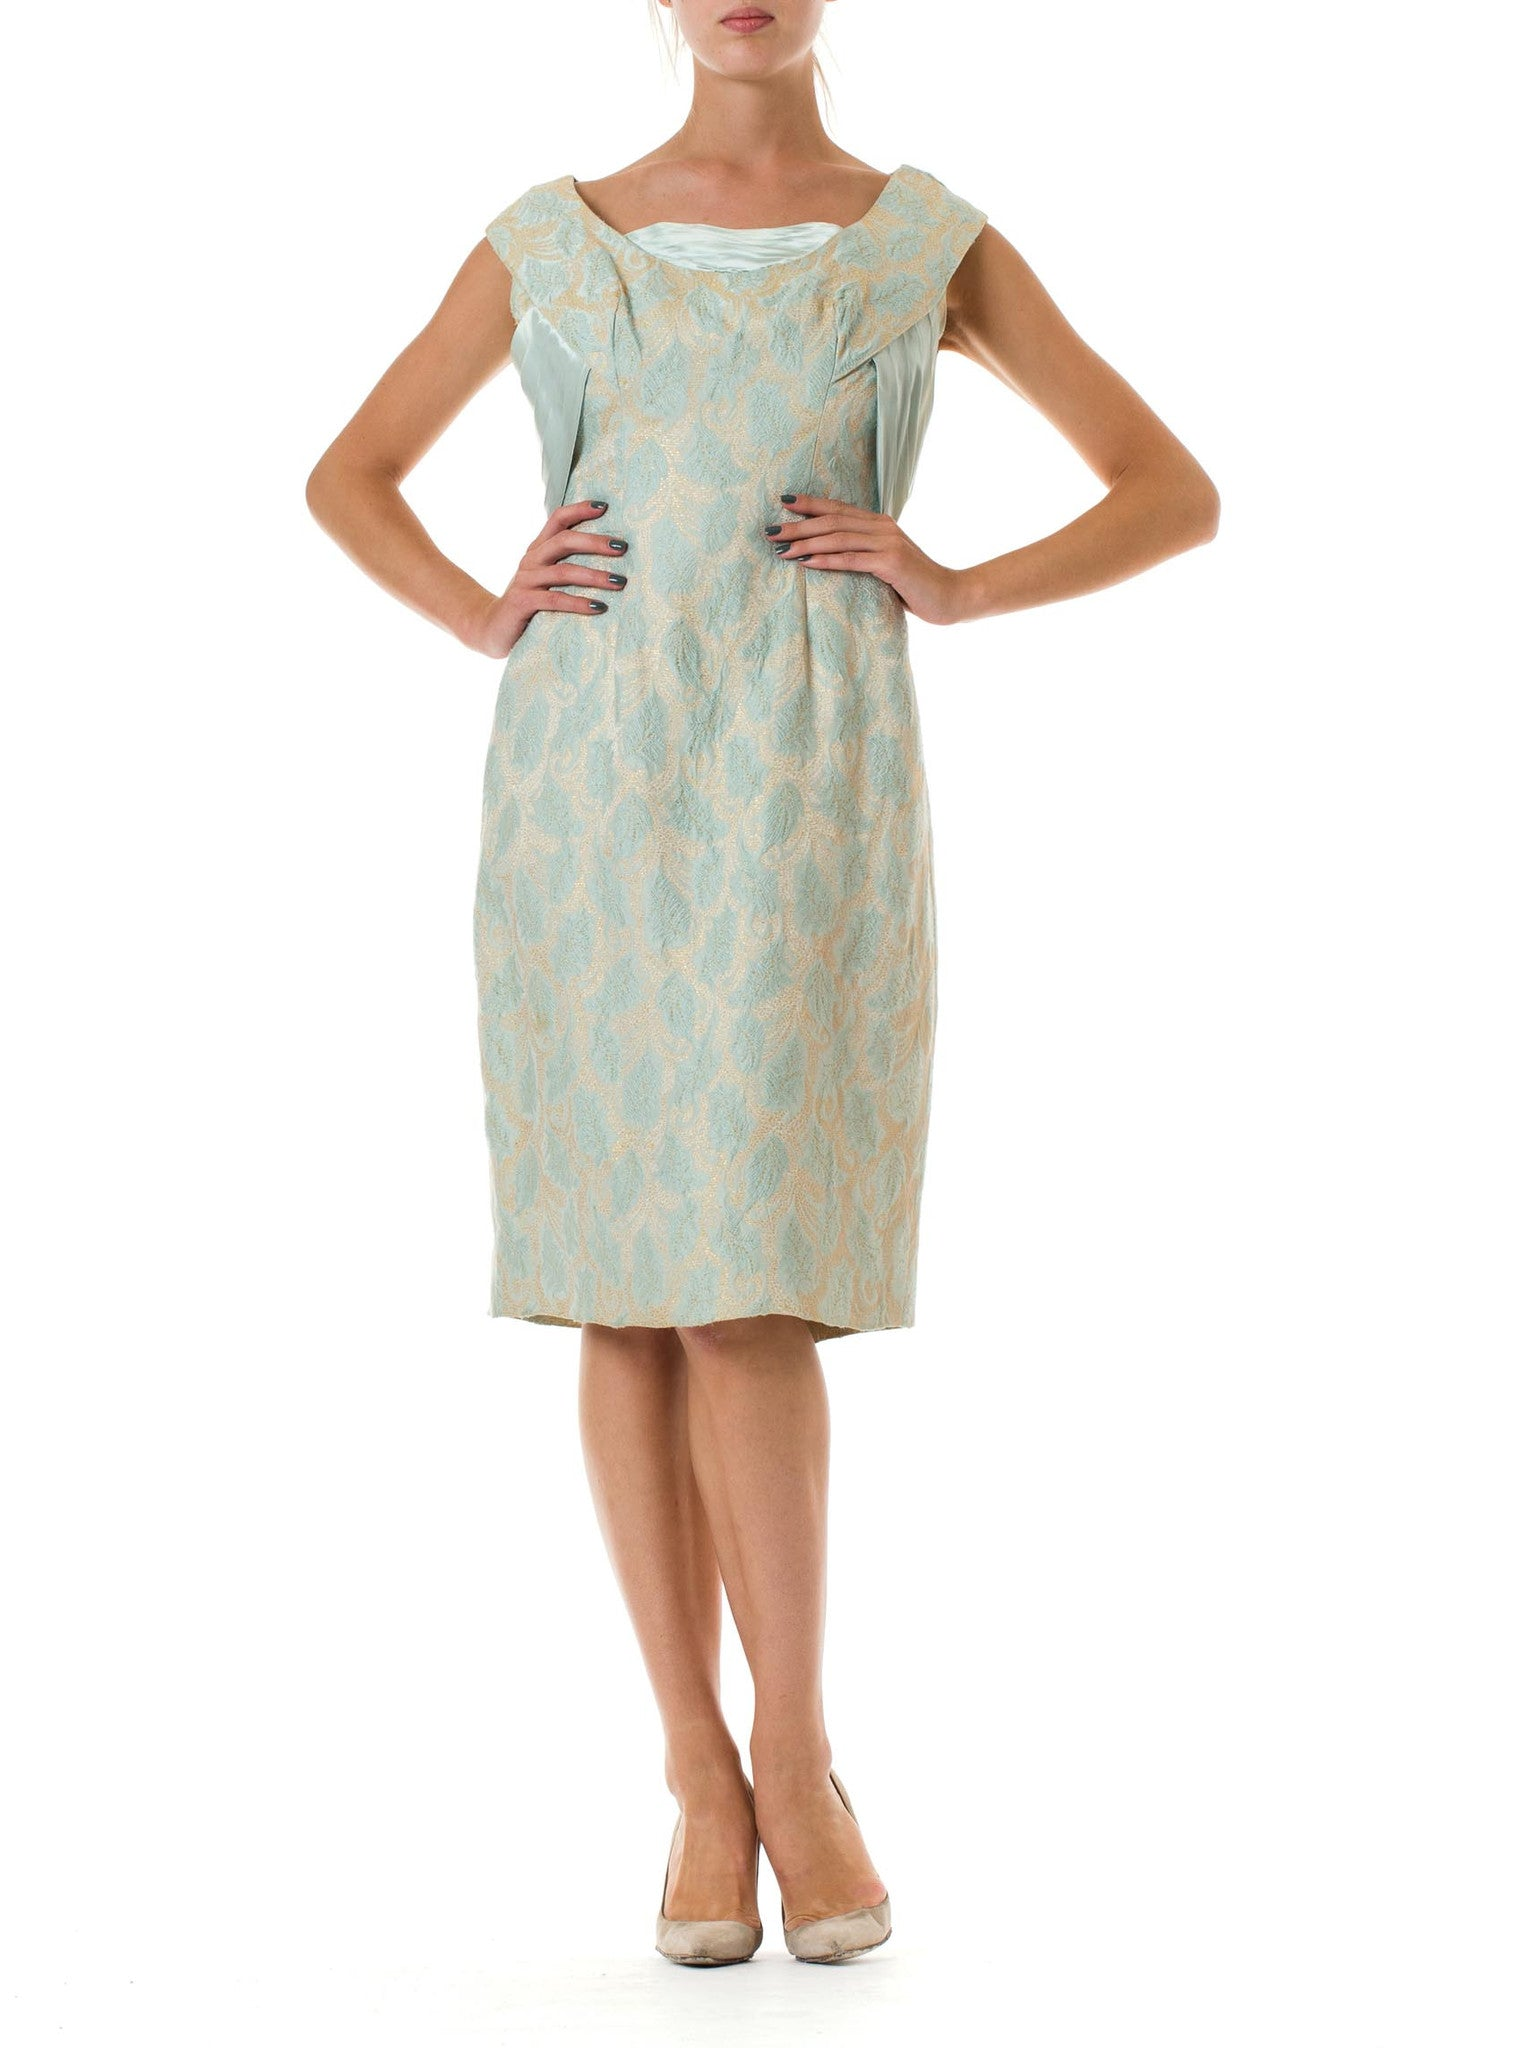 1950s Suzy Perette Silk Jacquard Sleeveless Dress